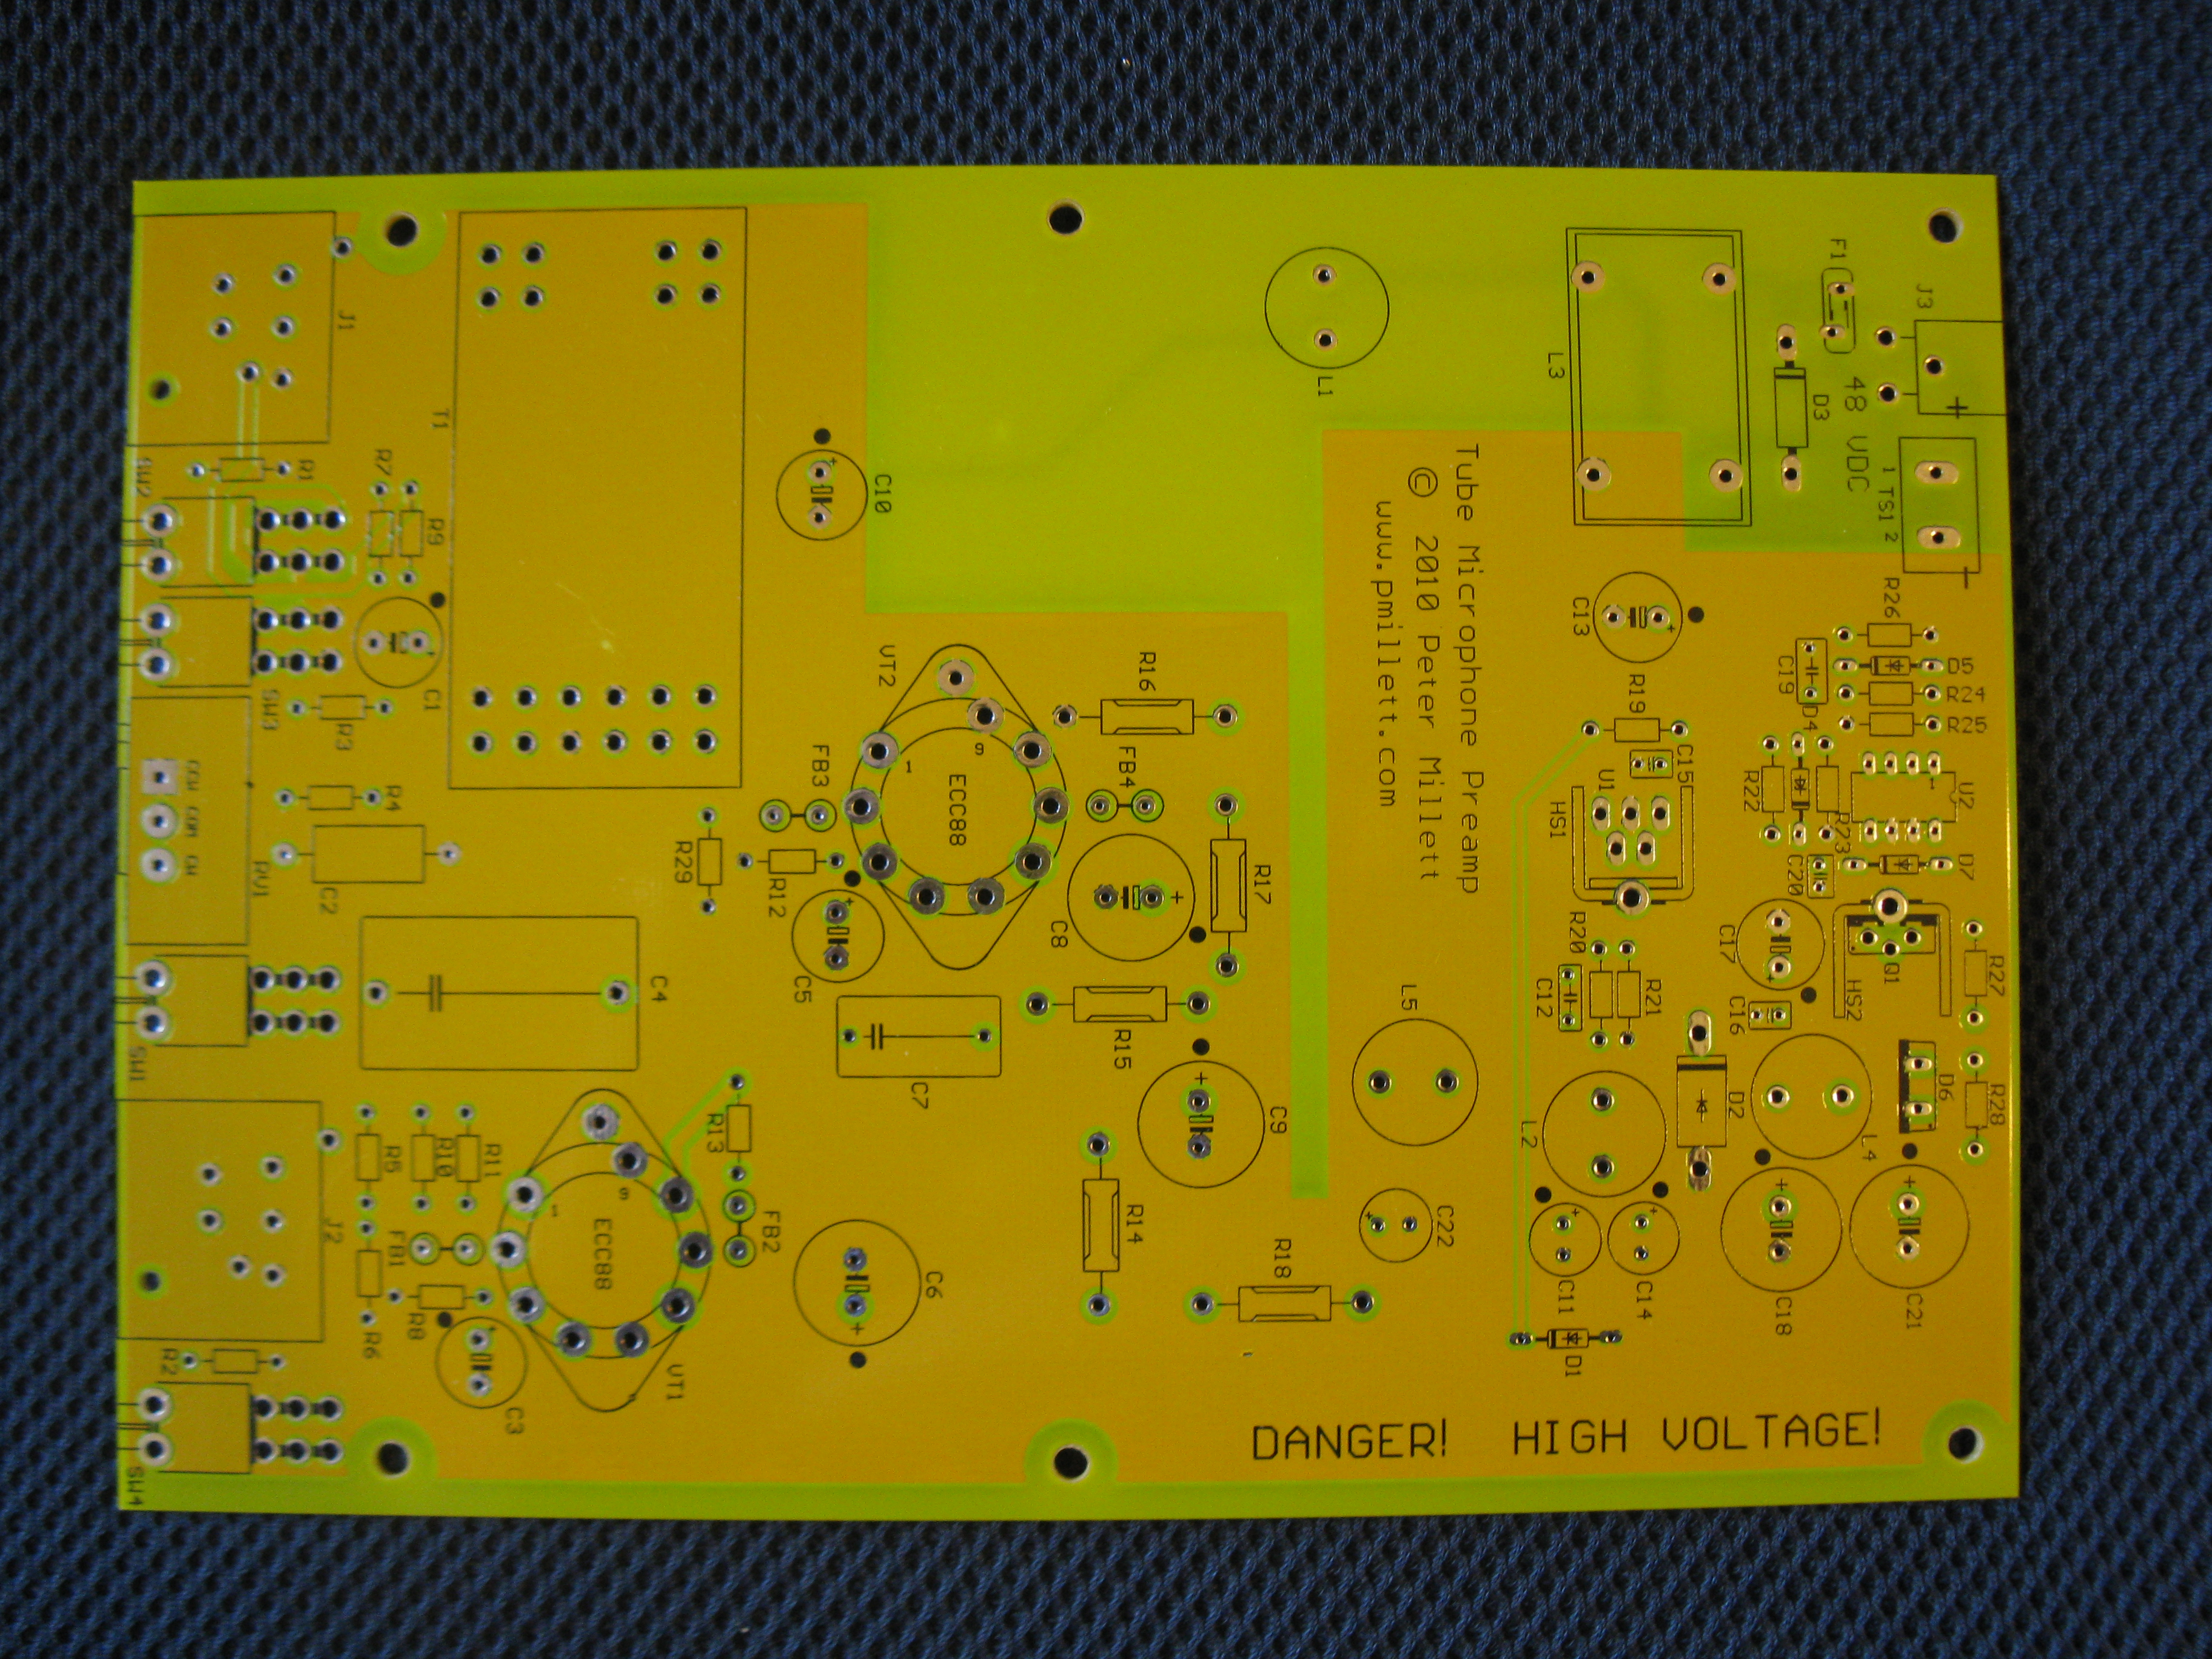 Tube Microphone Preamp Dynamic Mic Preamplifier Circuit Heres What The Pcb Looks Like Click For A Full Size Image